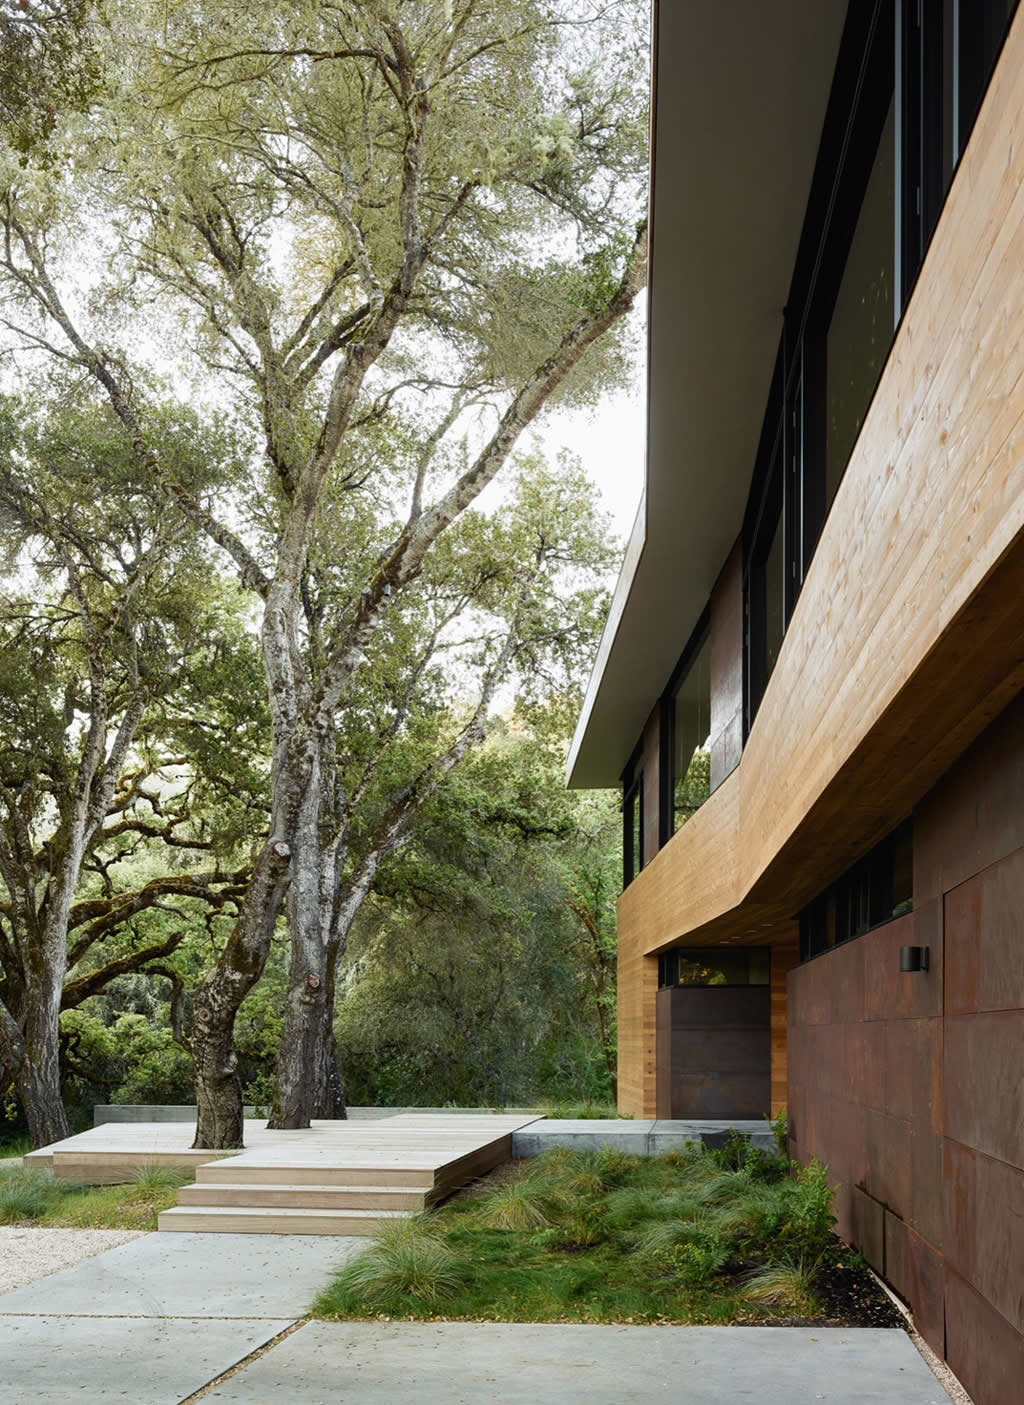 Residence In Carmel Valley By Sagan Piechota Architecture (19)